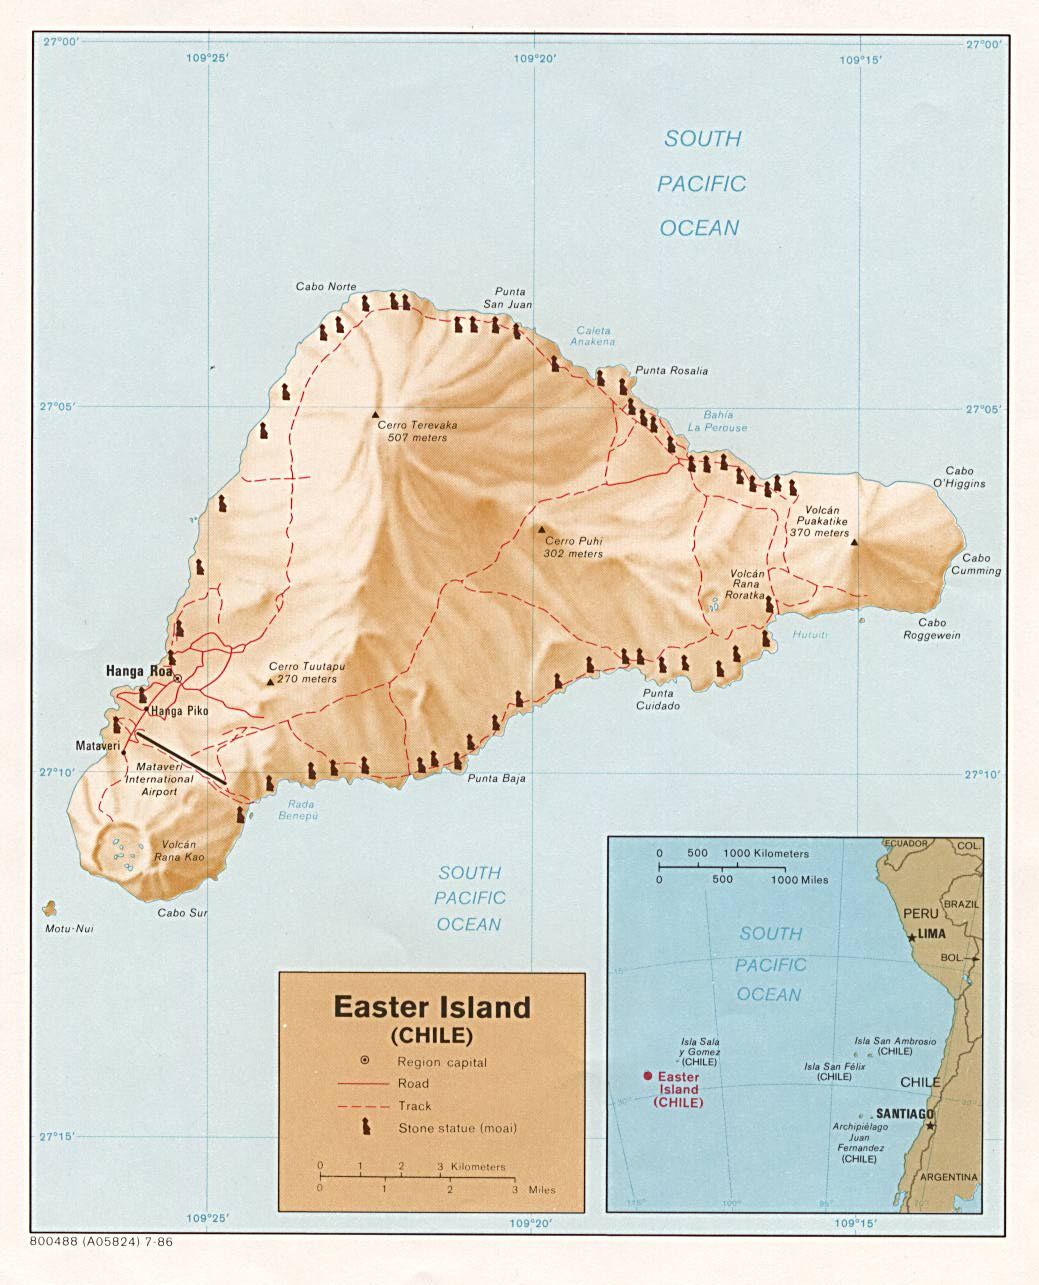 Easter_Island_Shaded_Relief_Map_Chile_2.jpg